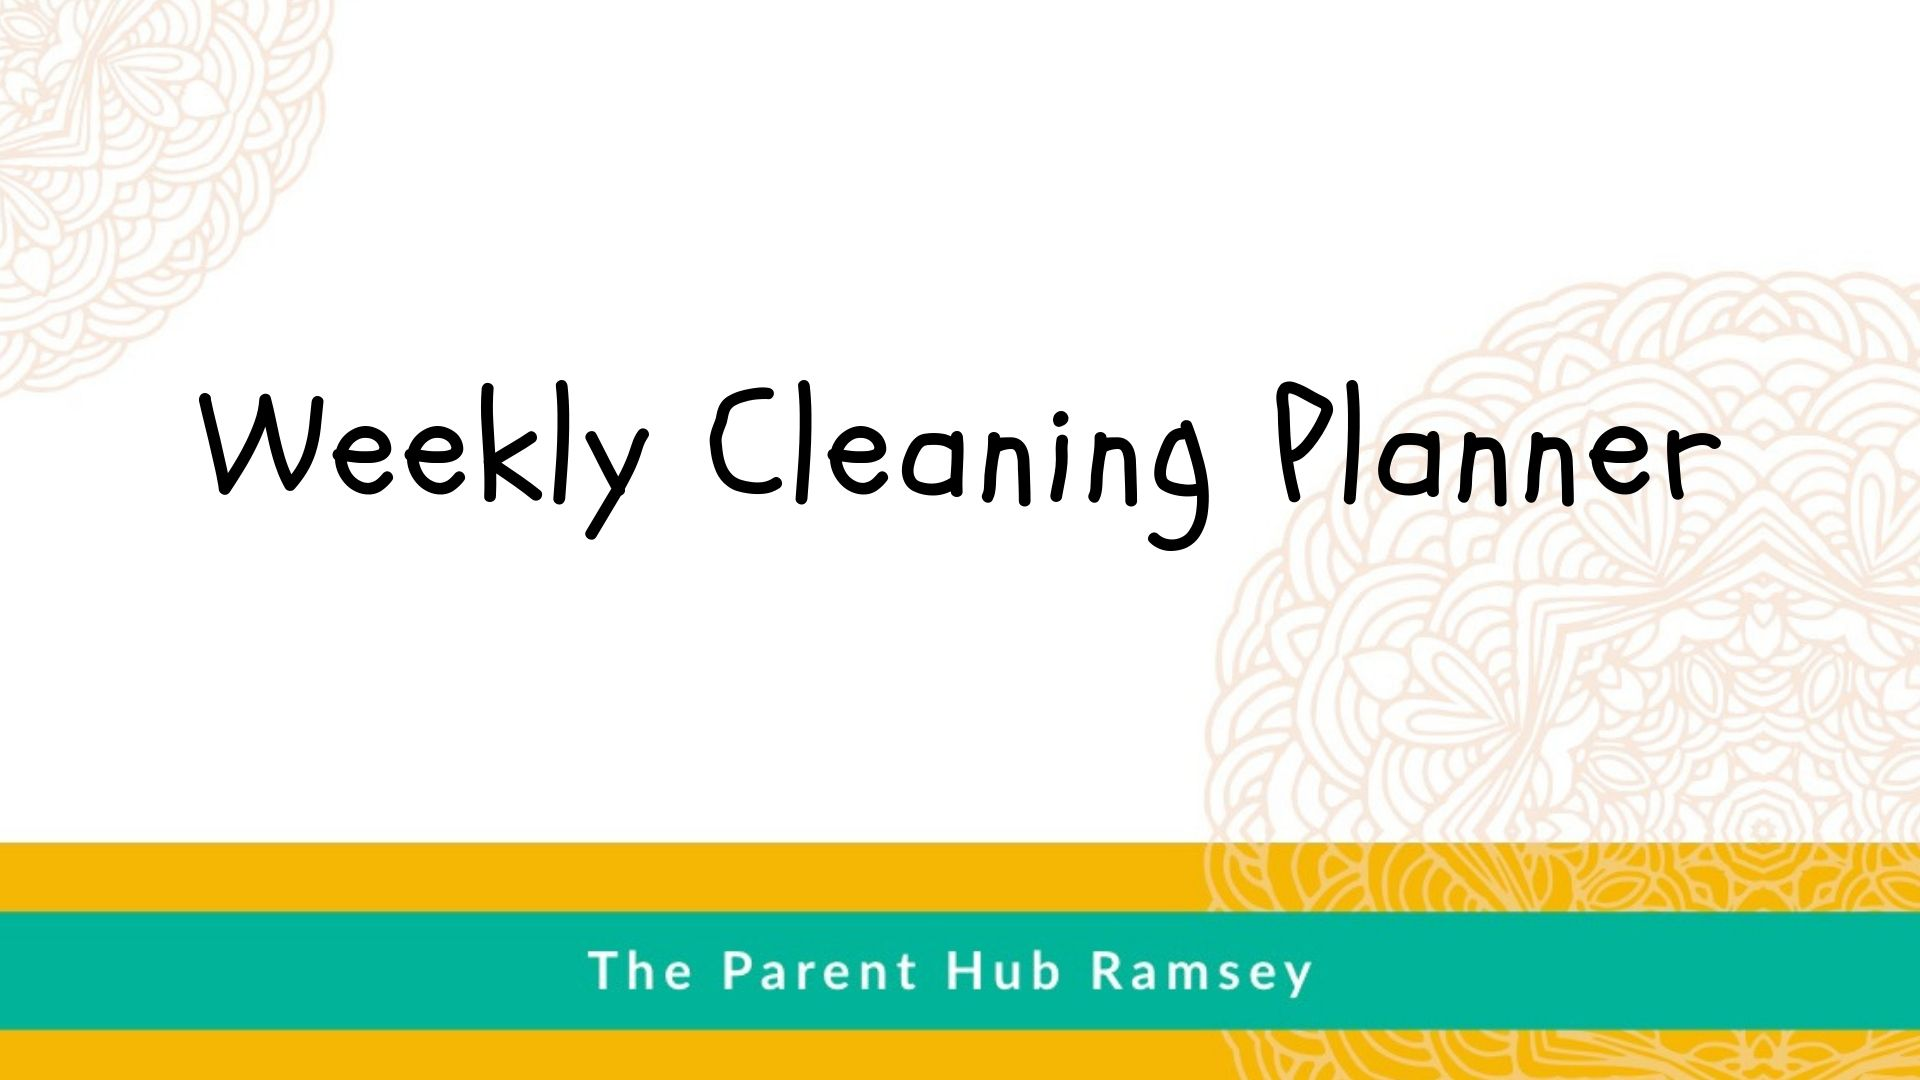 Weekly Cleaning Planner